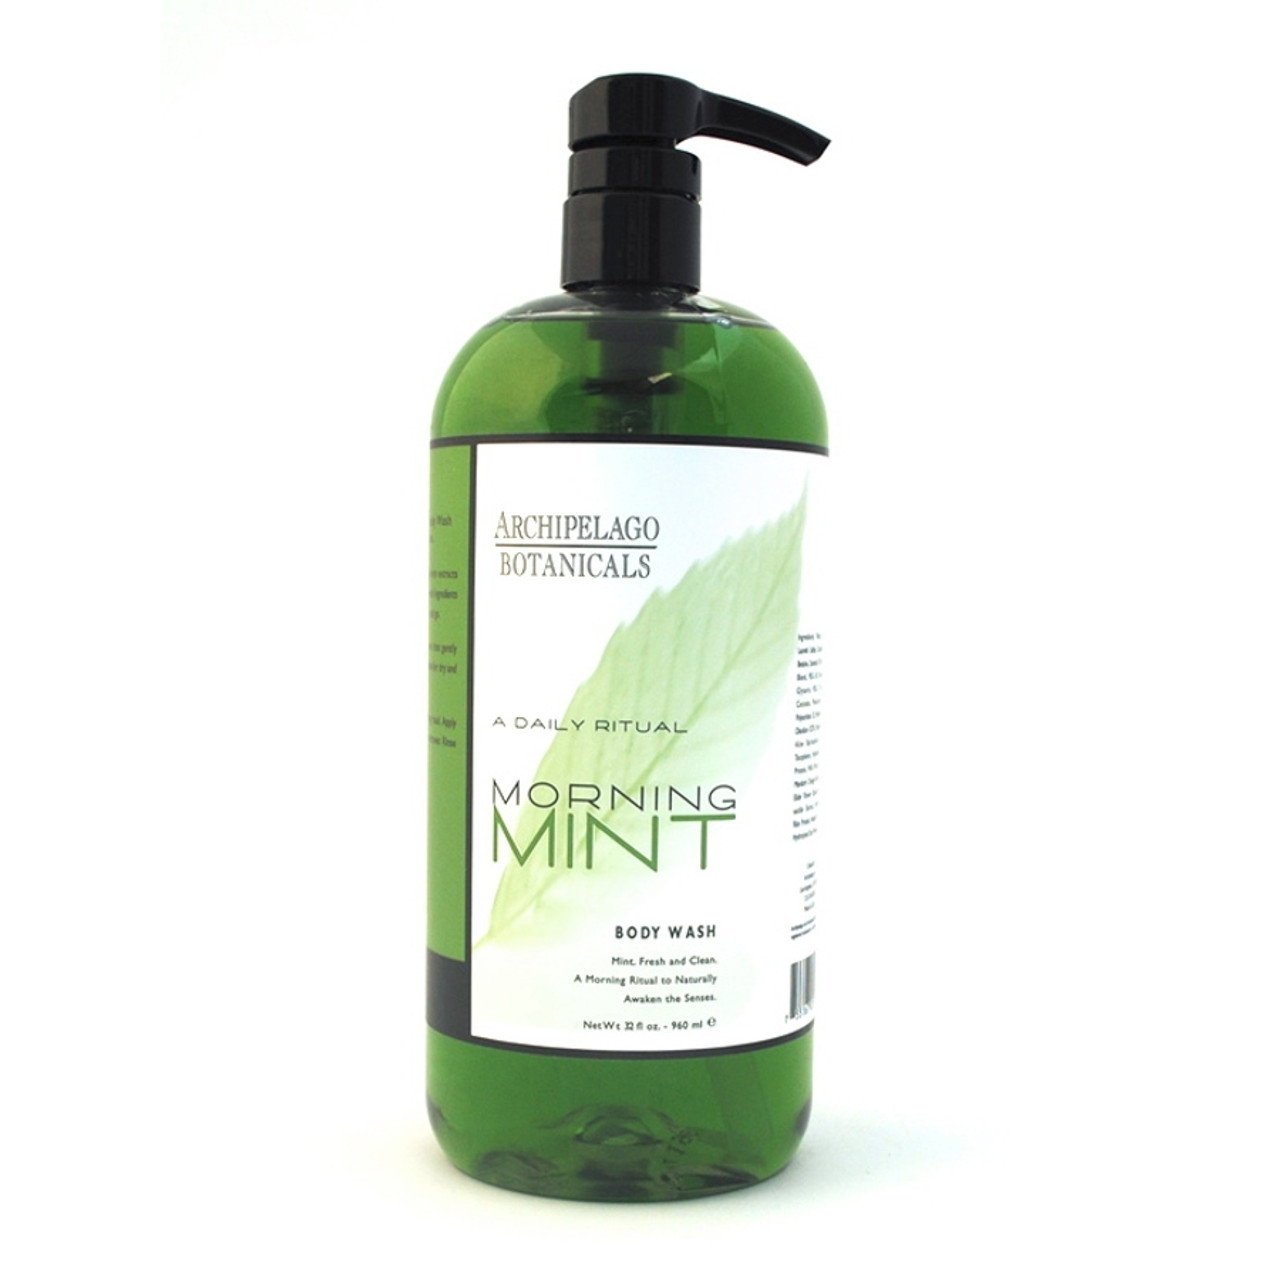 Archipelago Morning Mint Body Wash - 33 oz